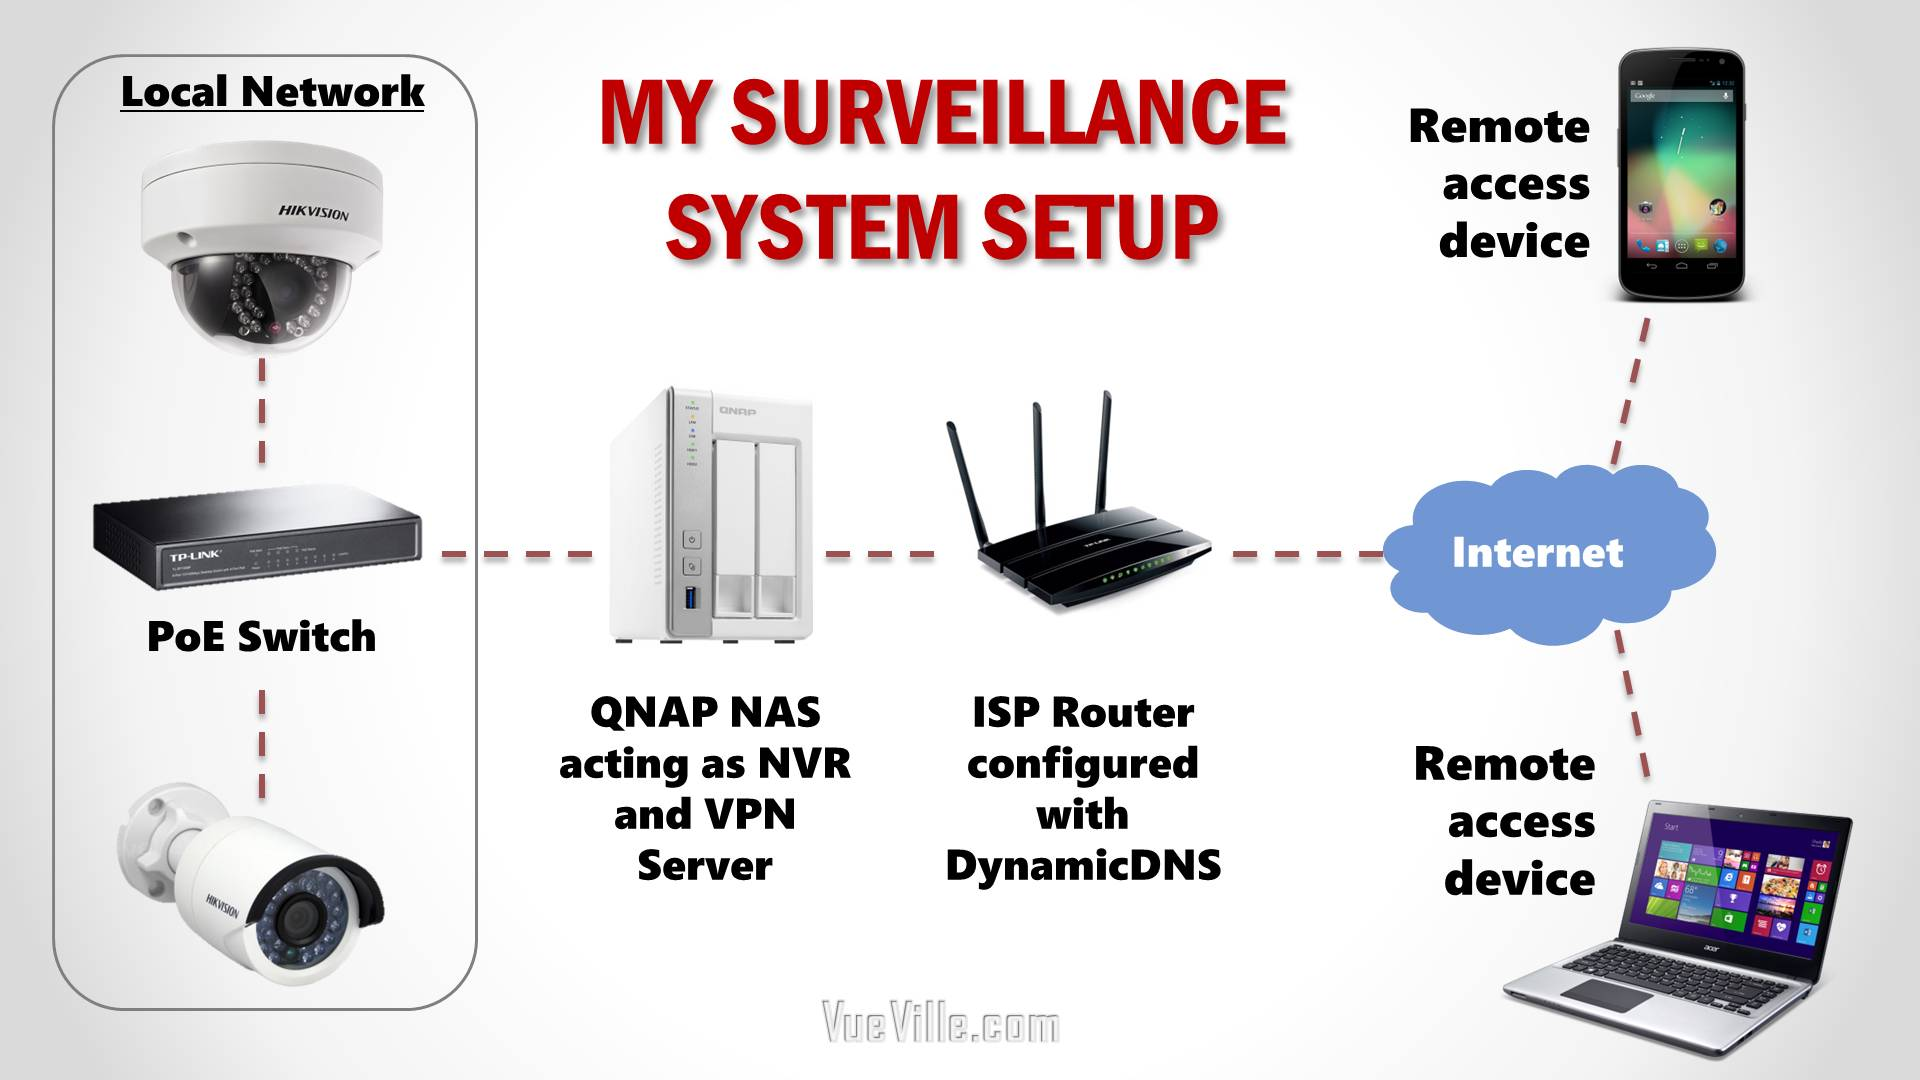 DIY Home Security System-Network Topology Logical-VueVille.com How we built our Camera System - VueVille